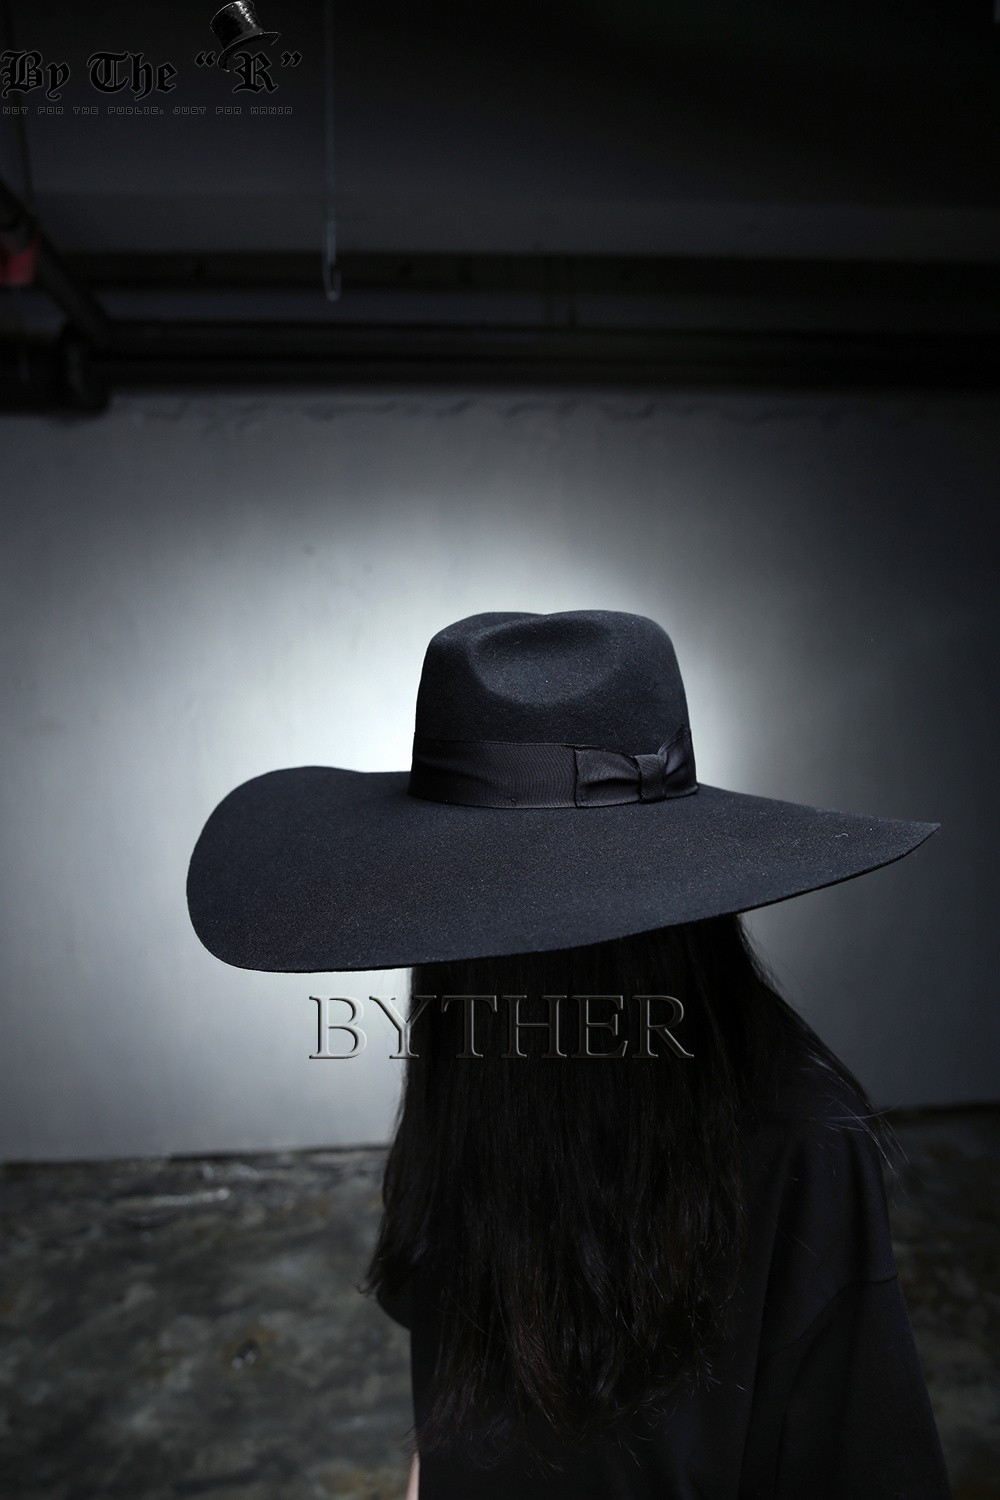 Details about ByTheR Unisex Modern Chic Classic Floppy Wide Brim 100% Wool Fedora  Witch Hat UK 773f85cd2f3